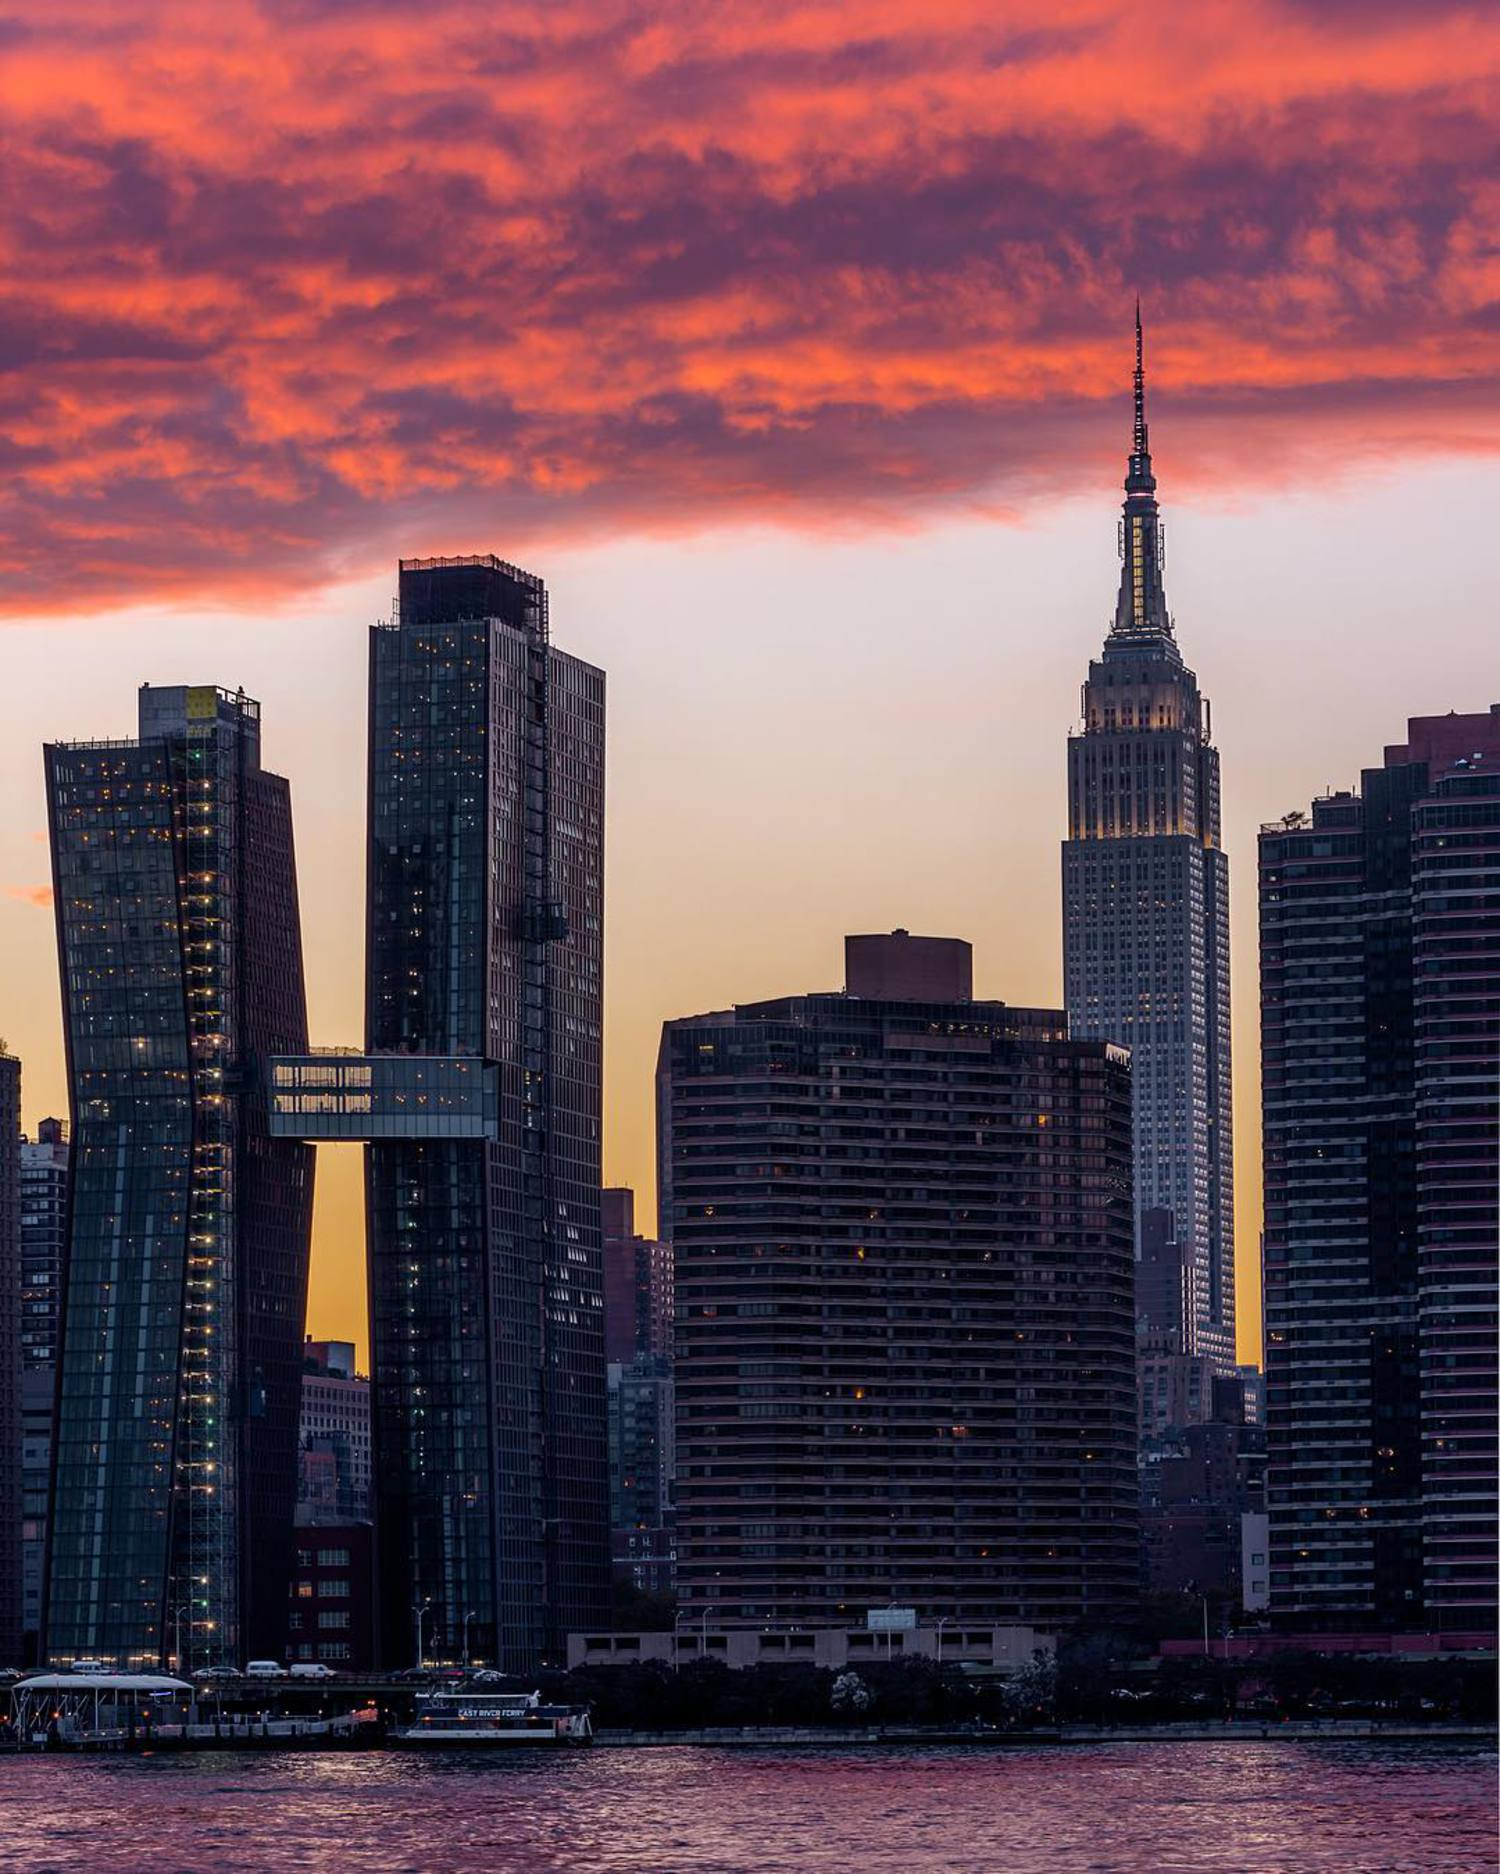 Let me get this straight: Brooklyn says YO and Manhattan says...HI? To Queens? OY vey.... ✨🤔✨😂✨ Sunset from Gantry Park in Queens last night with...nobody but me! But still check out some of the friends I tagged in the photo for some great photography! Happy Friday y'all! ✨👊🏼👨🏻✨ Camera: Nikon D7200 Lens: Nikkor 18-105 @ 70mm ISO: 100 Aperture: F11 Exposure: 1/20s NEF (RAW) format Post-processing/Edit: Lightroom ✨🌇✨🌆✨🌃✨🌉✨ #empirestatebuilding #queens #shotzdelight #wanderlust #shotzdelight #igpodium #killeverygram #visualambassadors #citykillerz #artofvisuals #theimaged #killeverygram #igworldclub #urbanandstreet #instagramnyc #urbanromantix #ig_worldclub #world_shotz #way2ill #worldbestgram #worldcaptures #ig_mood #moodygrams #agameoftones #fatalframes #heatercentral #instagood #ny #nyc